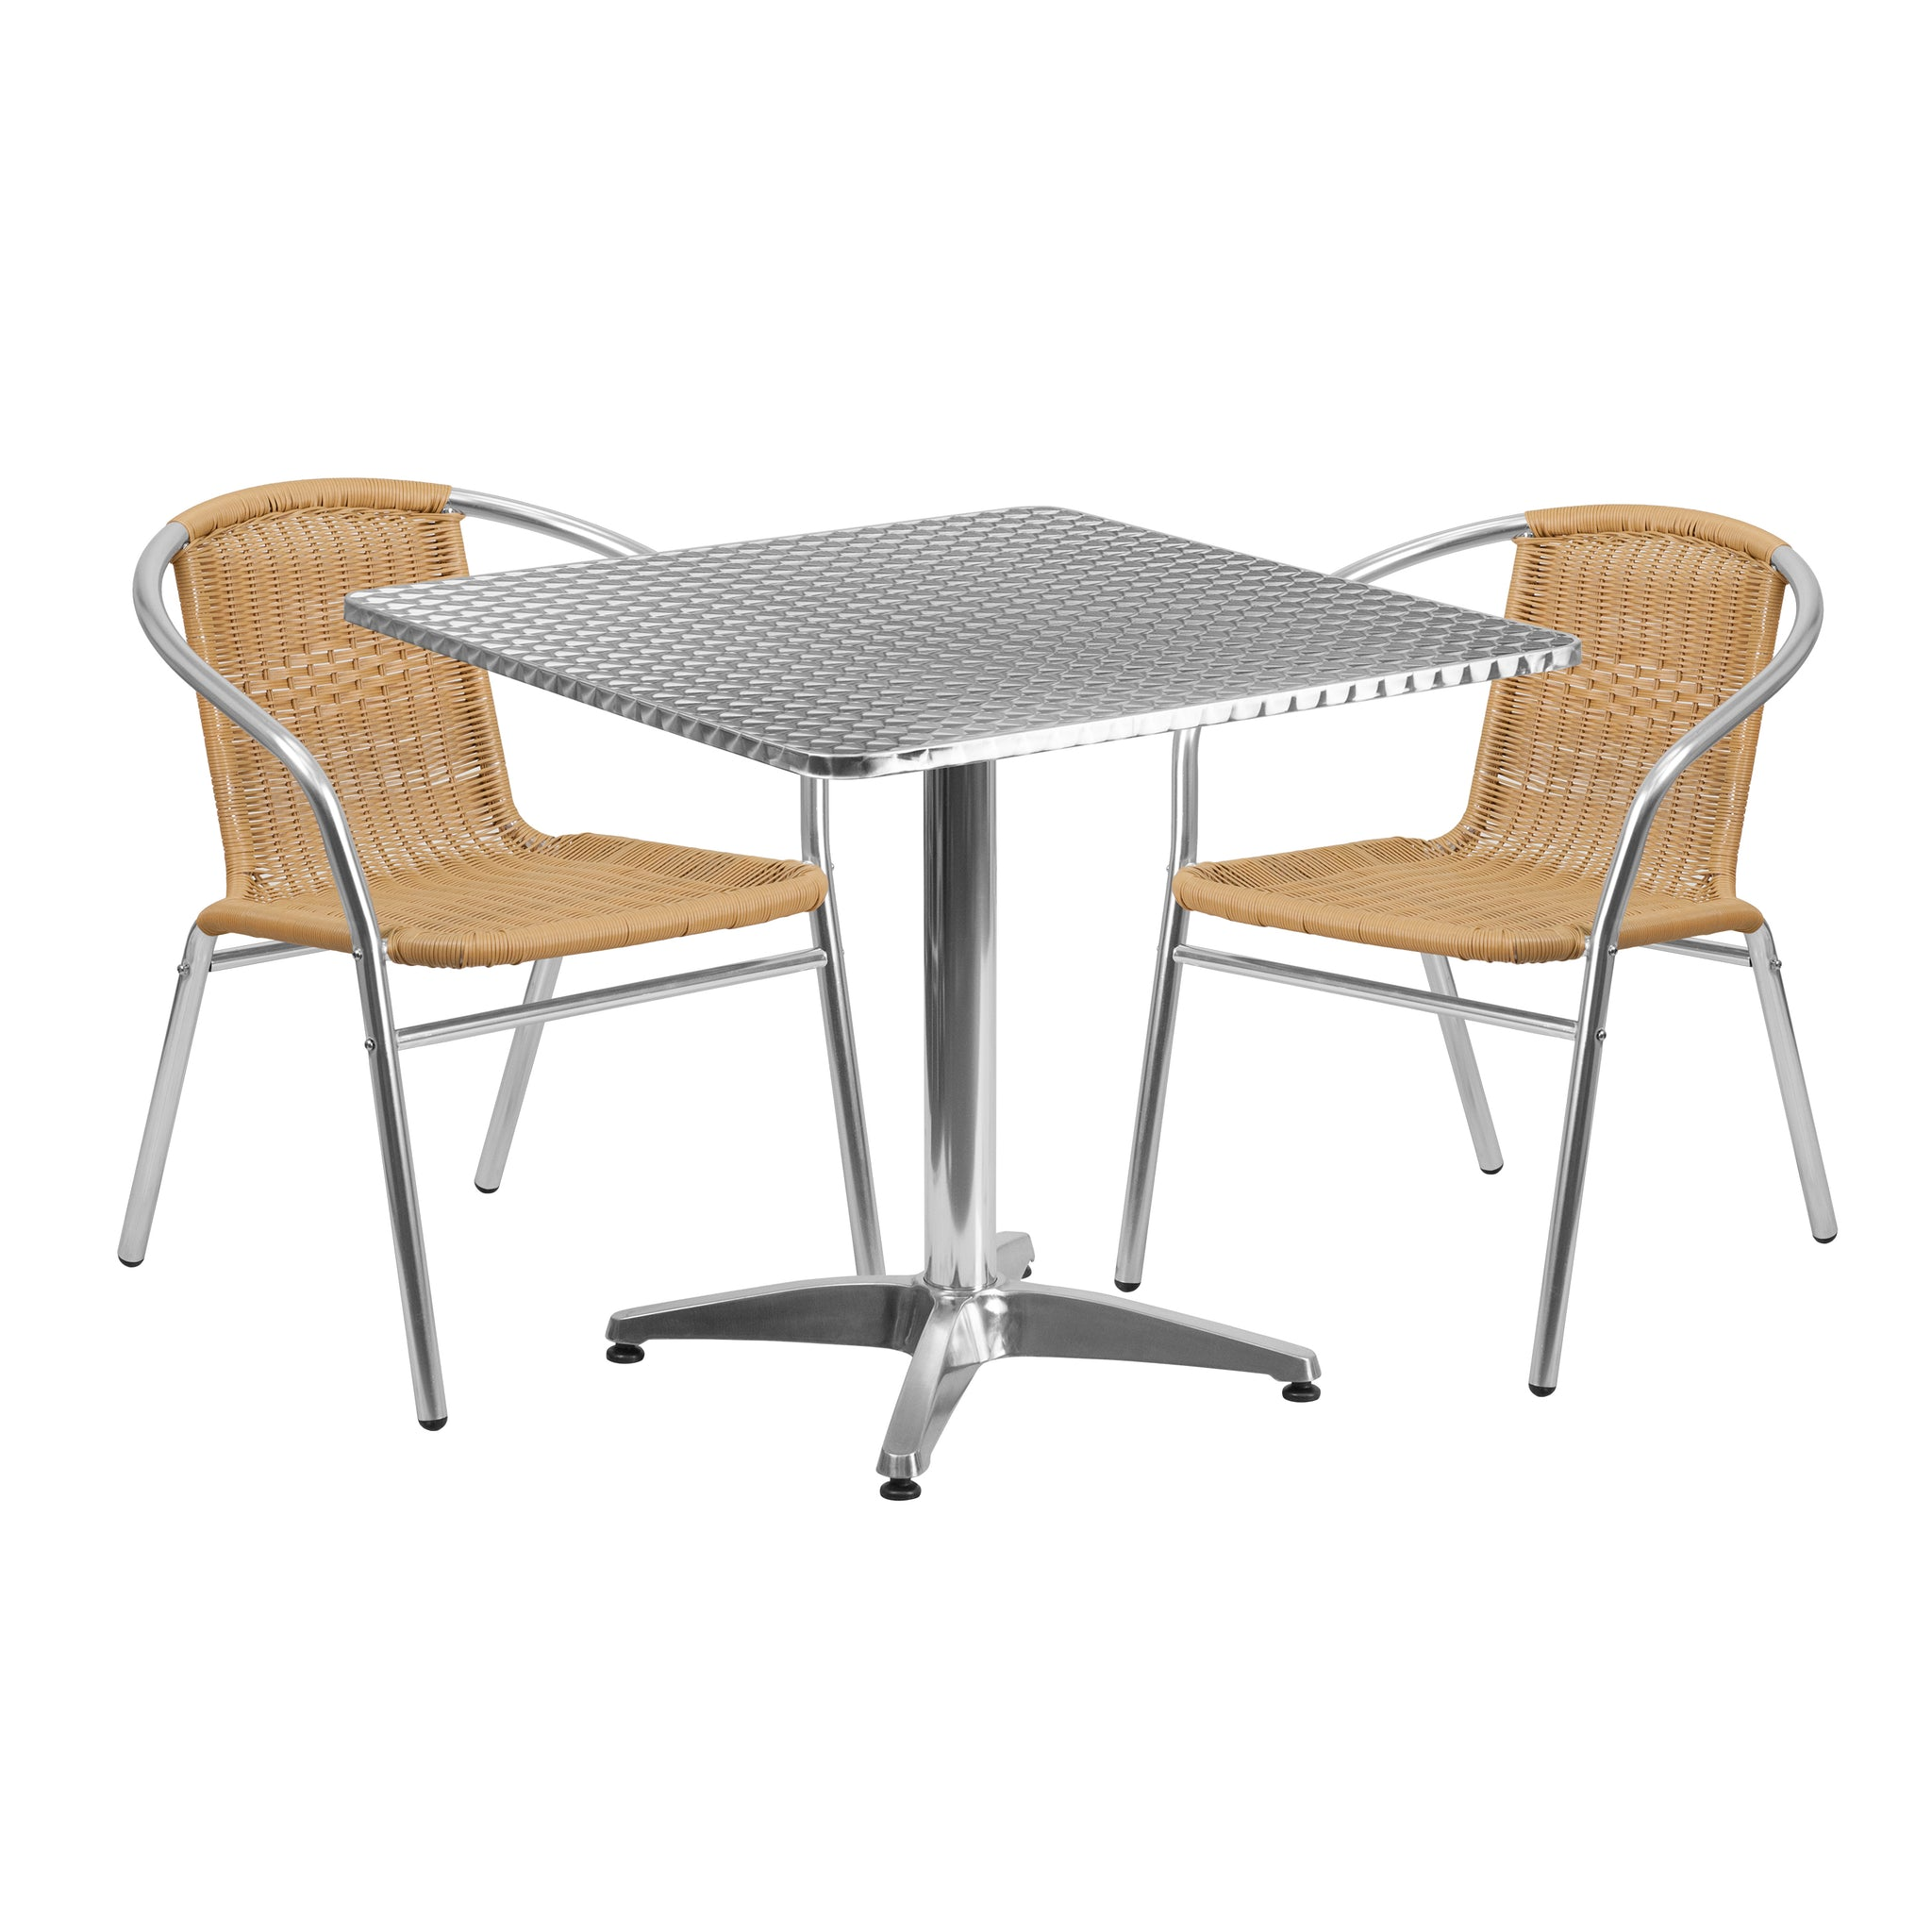 31.5'' Square Aluminum Indoor-Outdoor Table with 2 Rattan Chairs: Beige